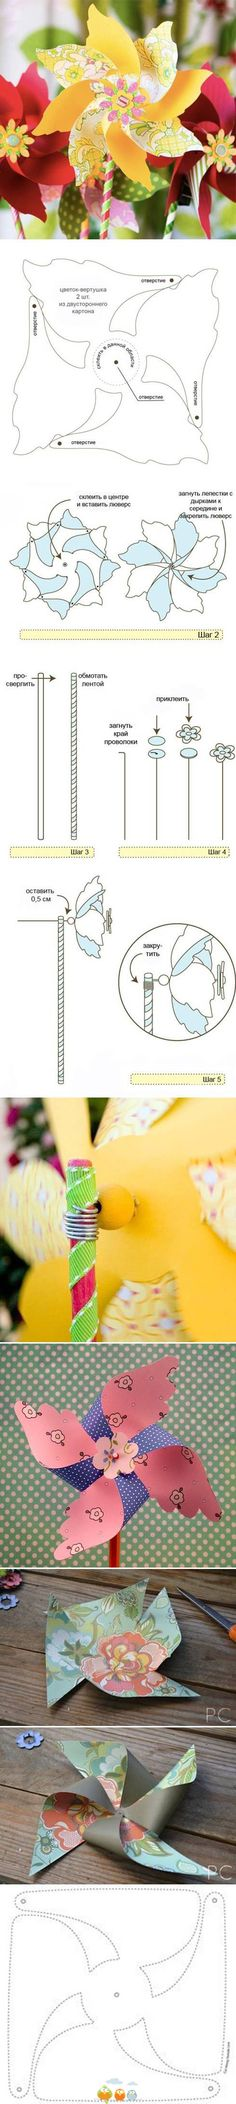 DIY Double Pinwheel - Visual step-by-step only, unless you can read this…